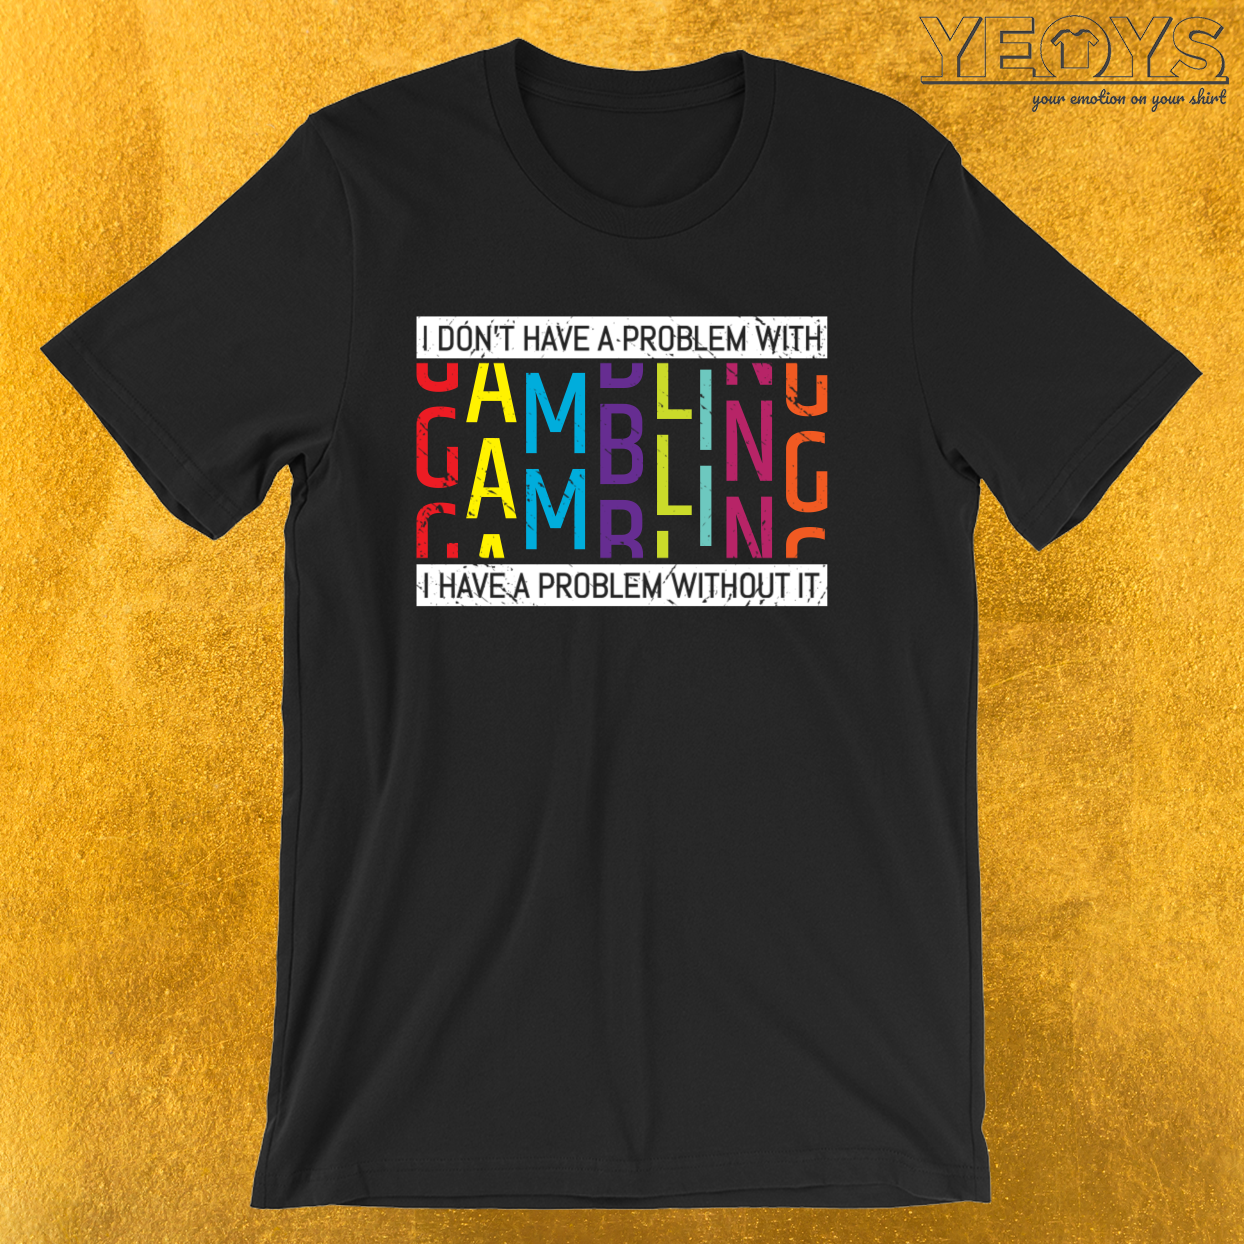 I Don't Have A Problem With Gambling – Gambling Problem Tee